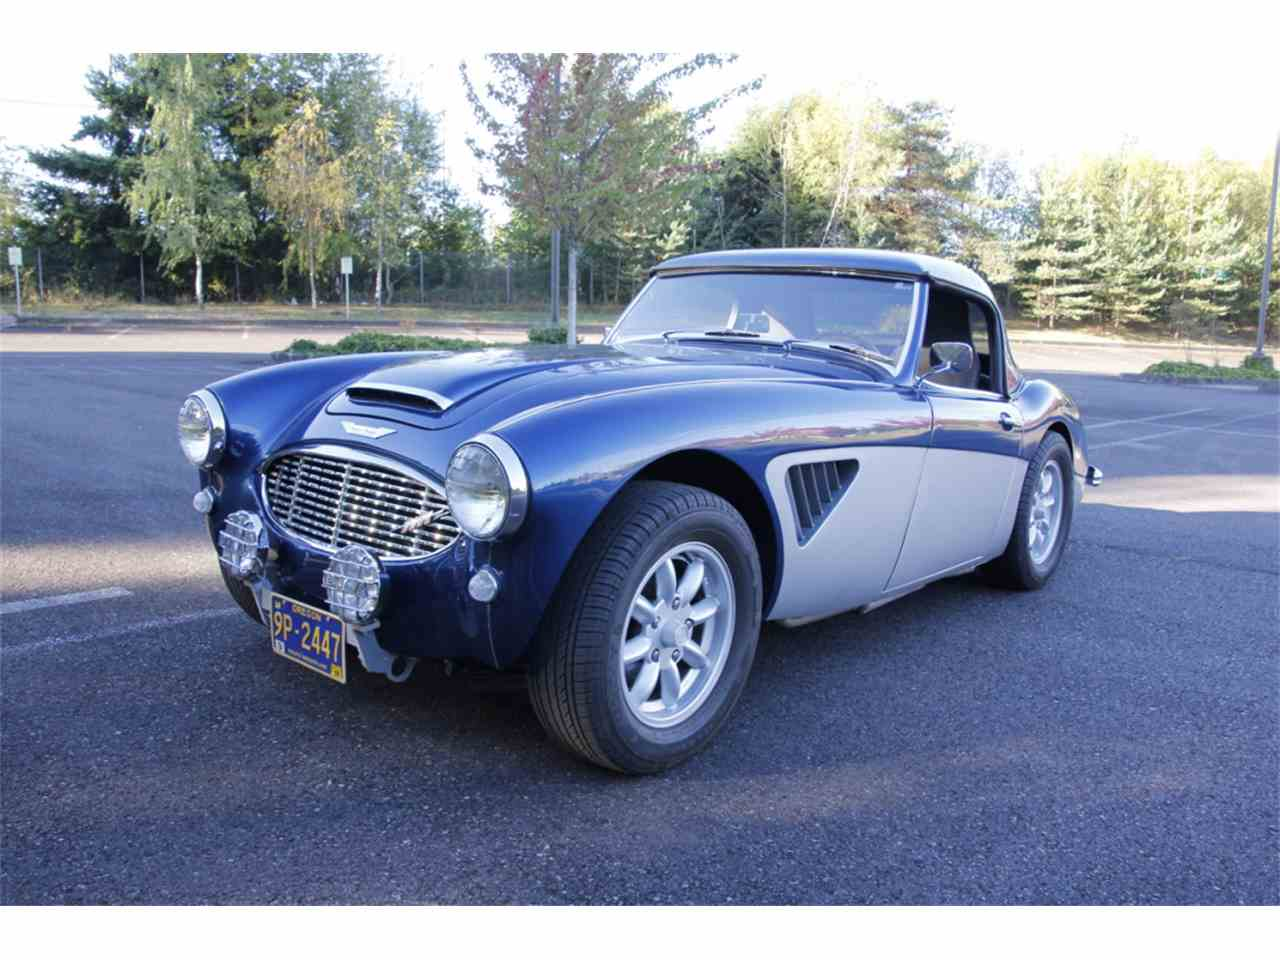 Large Picture of '59 Austin-Healey 3000 Mark I BN7 located in Oregon Offered by a Private Seller - LU6O